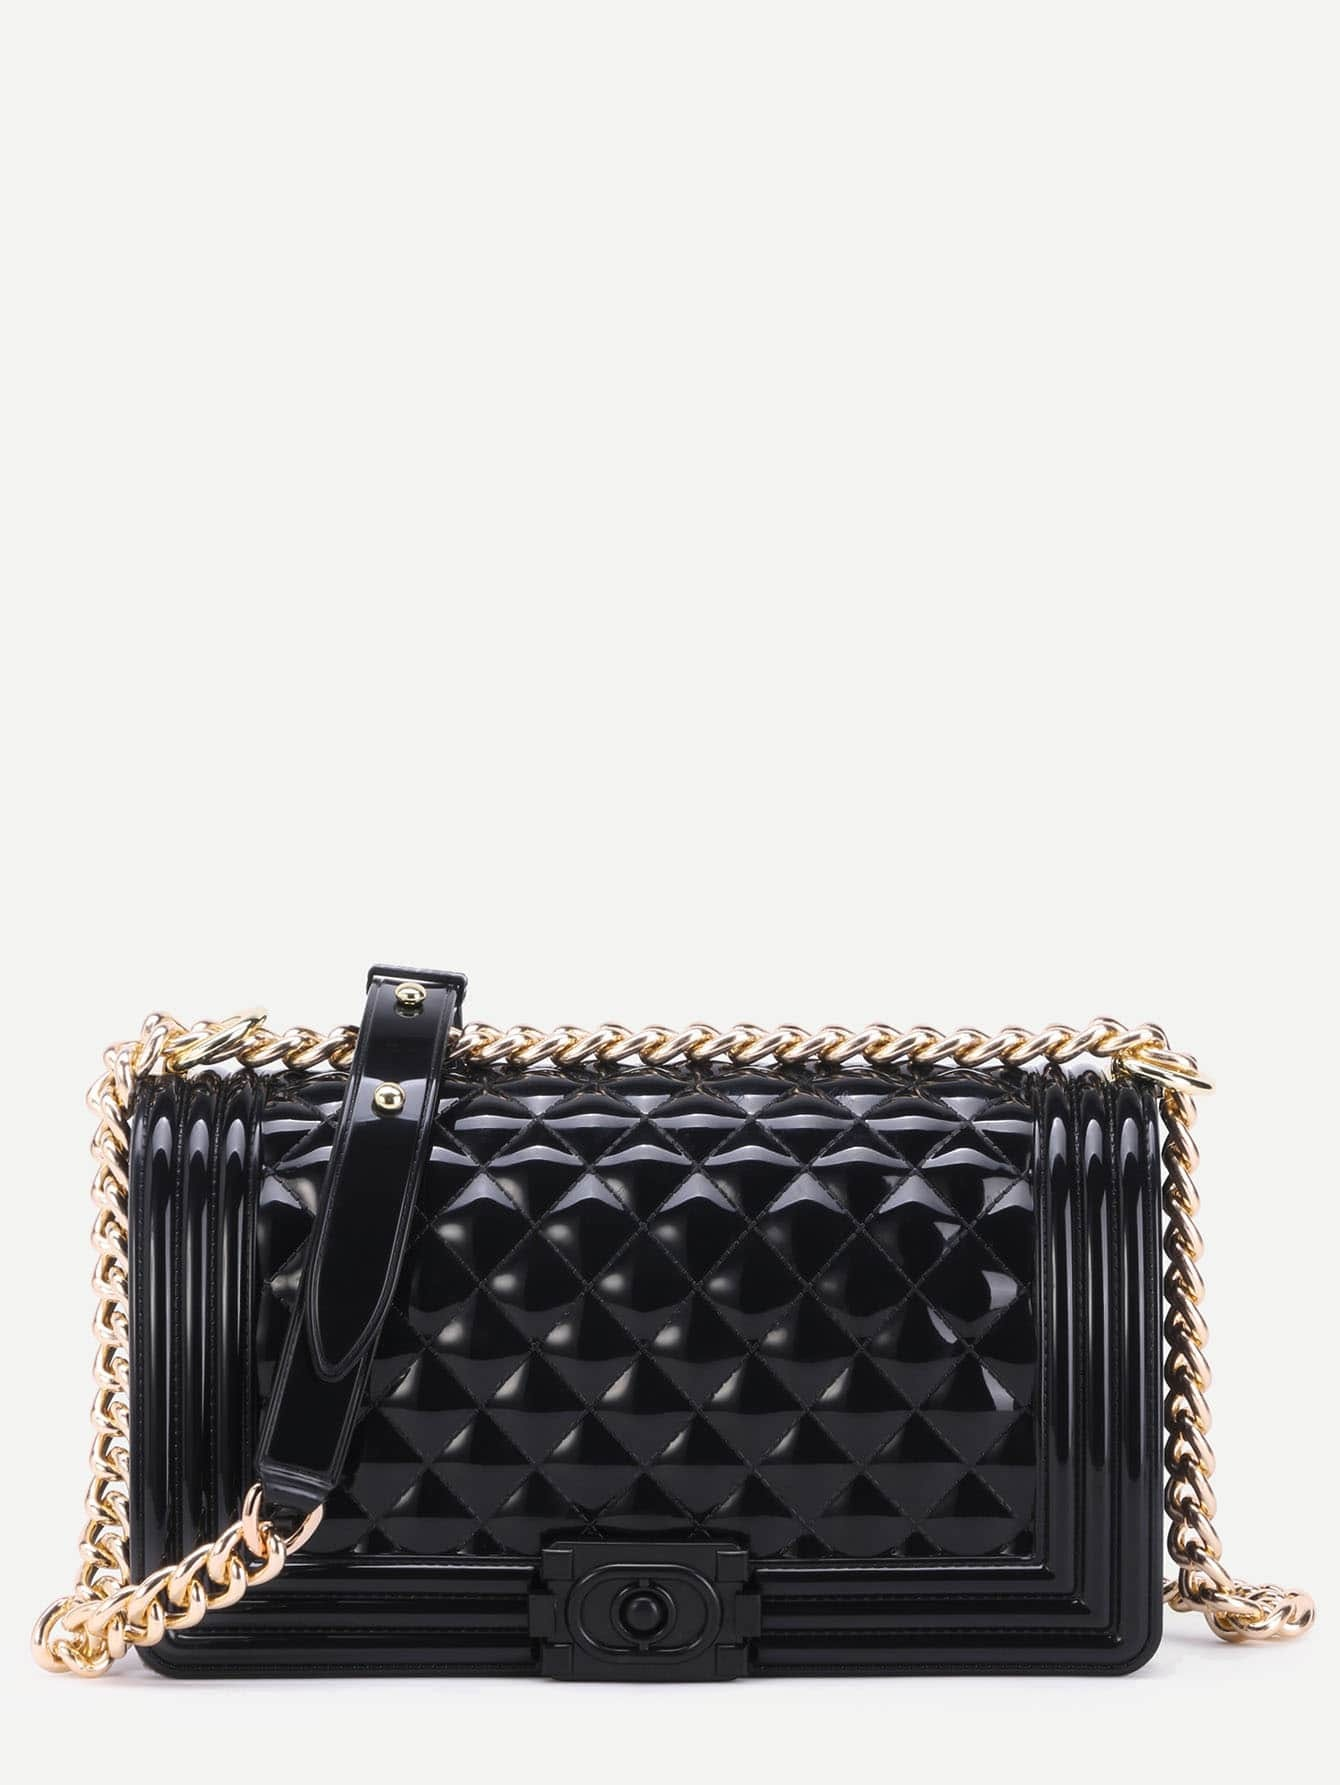 Mini Black Quilted Flap Jelly Bag With Chainfor Women Romwe